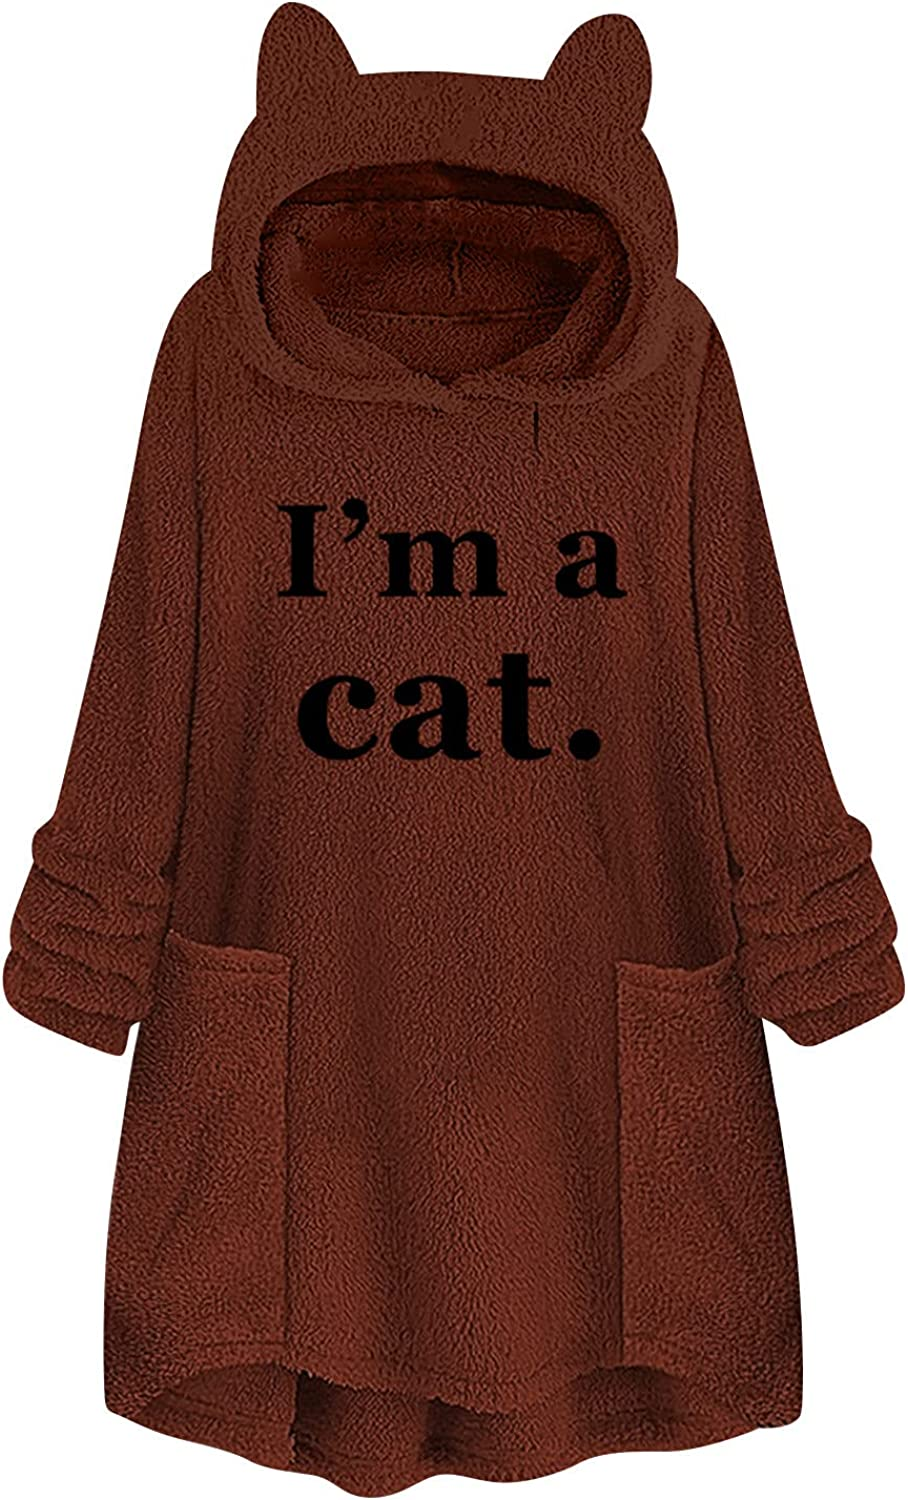 Kanzd Cat Ear Hooides Fashion Pullover for Max 51% OFF Long Fle Sleeve Women